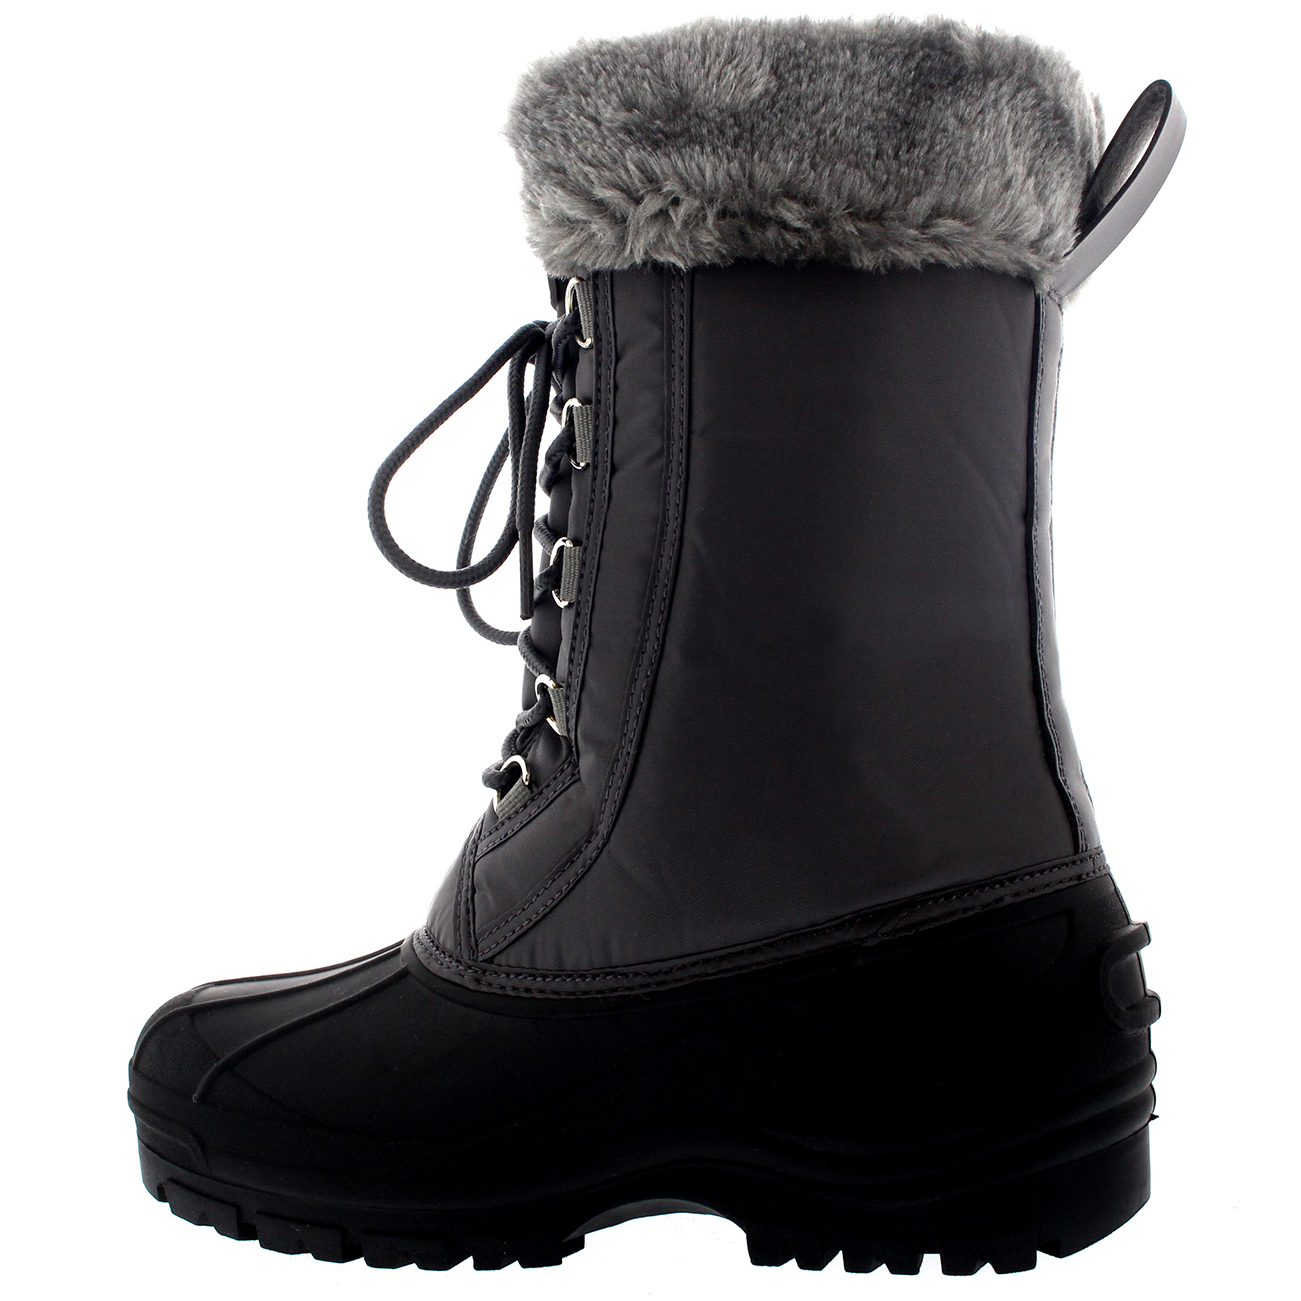 Snow Boots. Heading for the mountains? If there's snow on the ground, you're going to need a pair of these! Available in both ankle and to-the-knee styles, these warm snow boots for men, women and kids promise comfort and warmth.